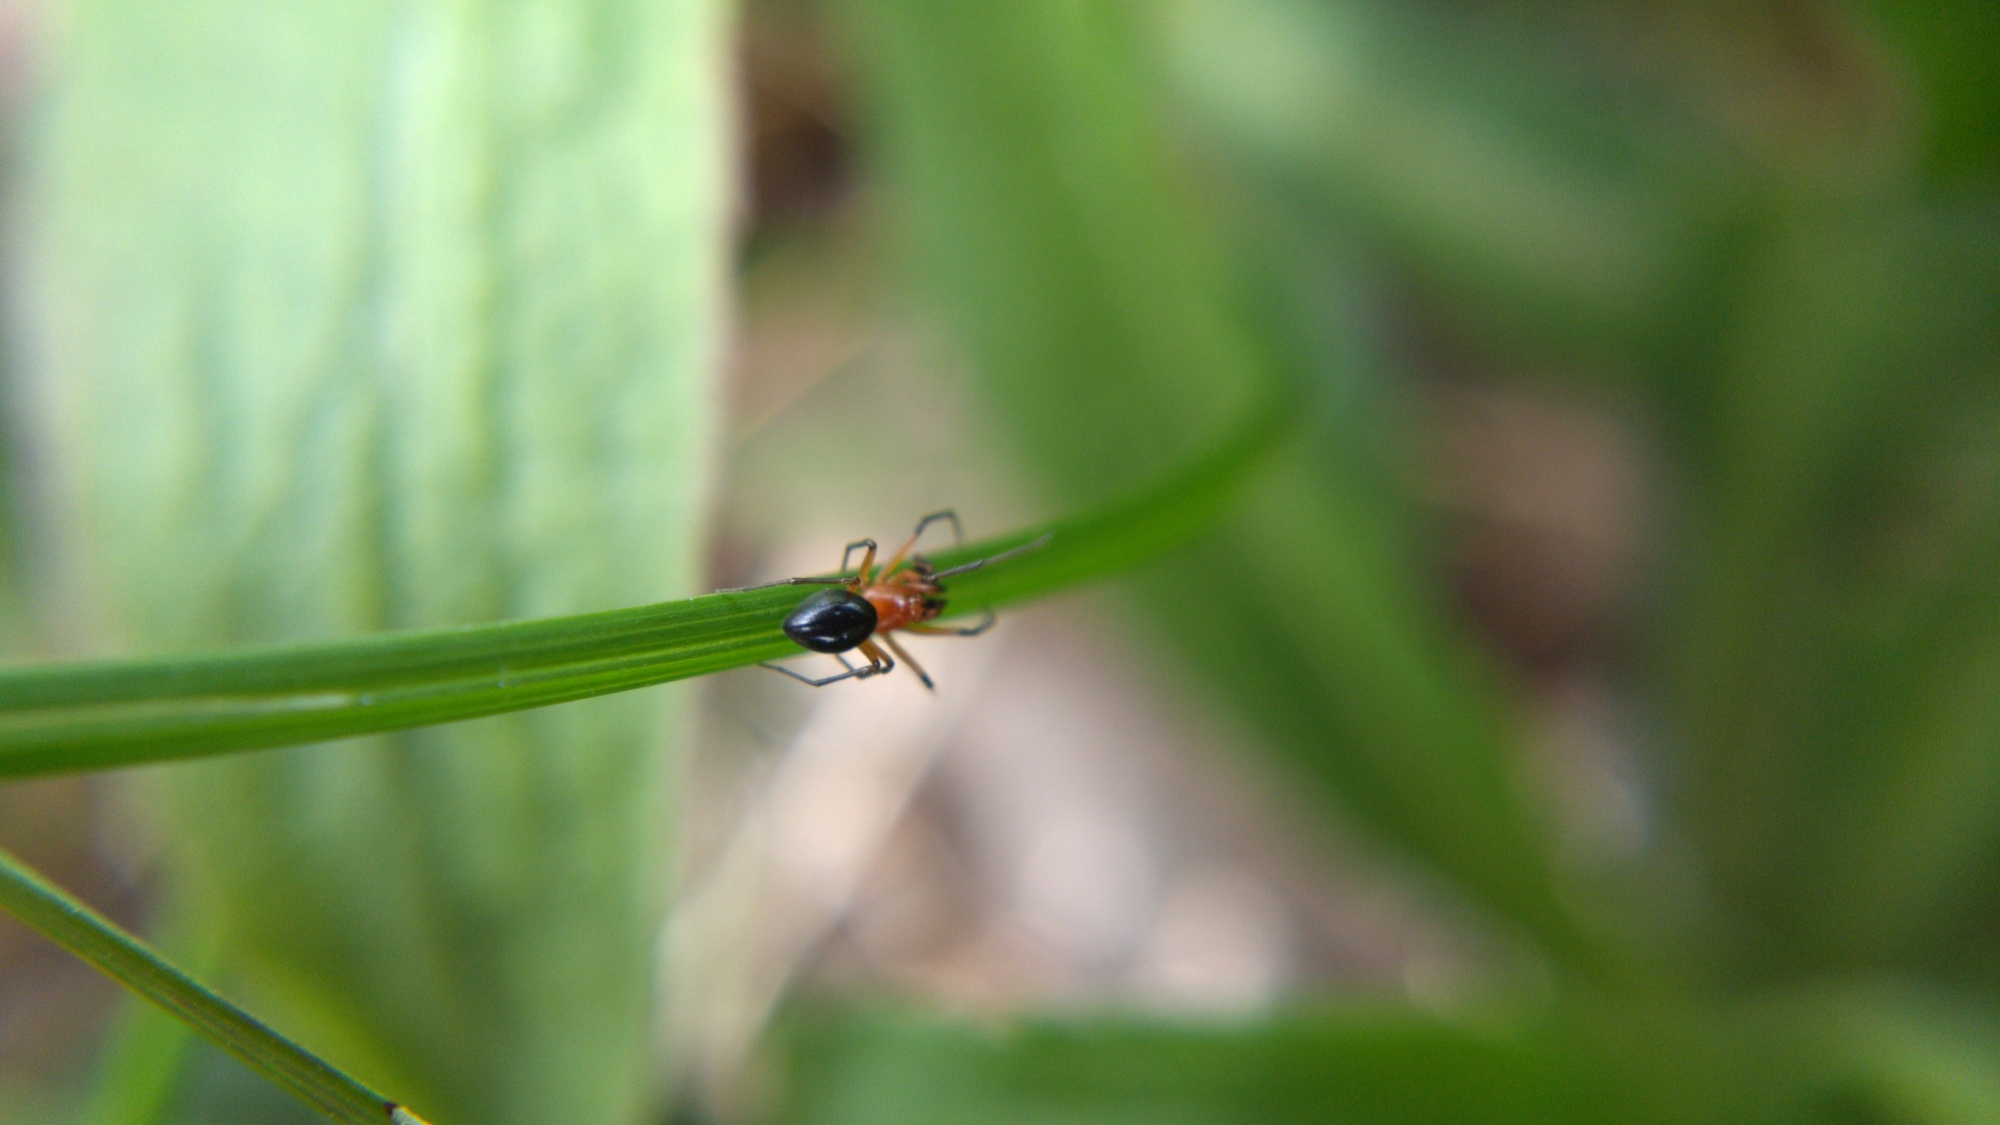 Blurry macro shot of H. florens on a blade of grass